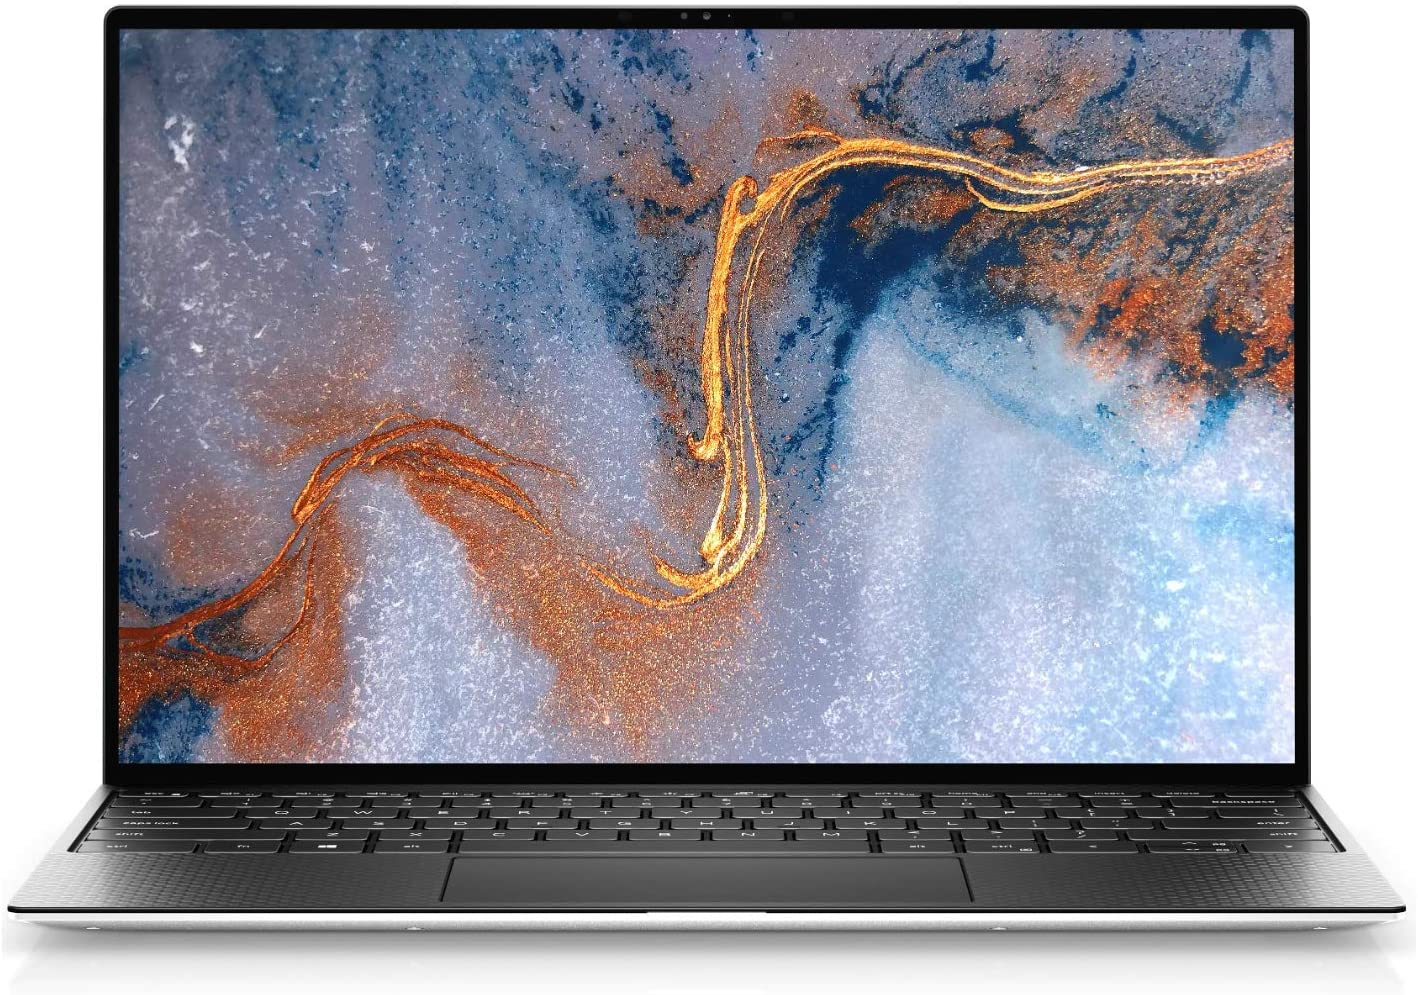 Dell XPS 13 9310 Review